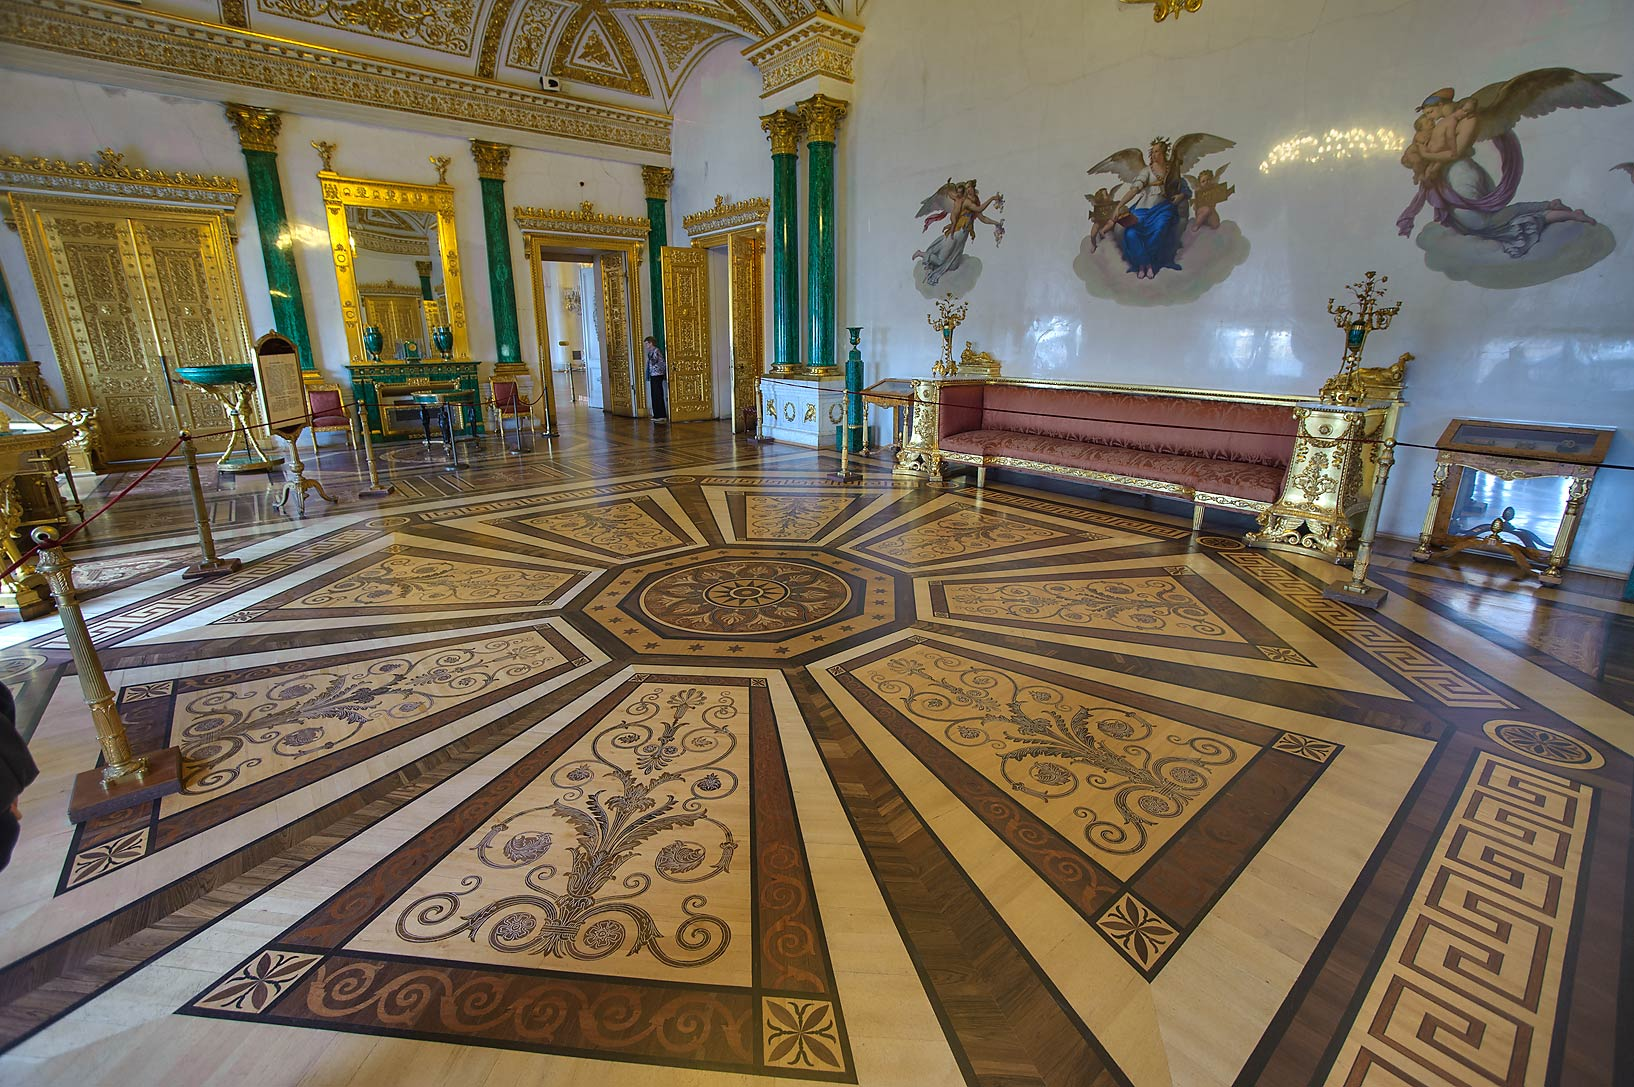 Malachite Room in Hermitage Museum. Petersburg, Russia